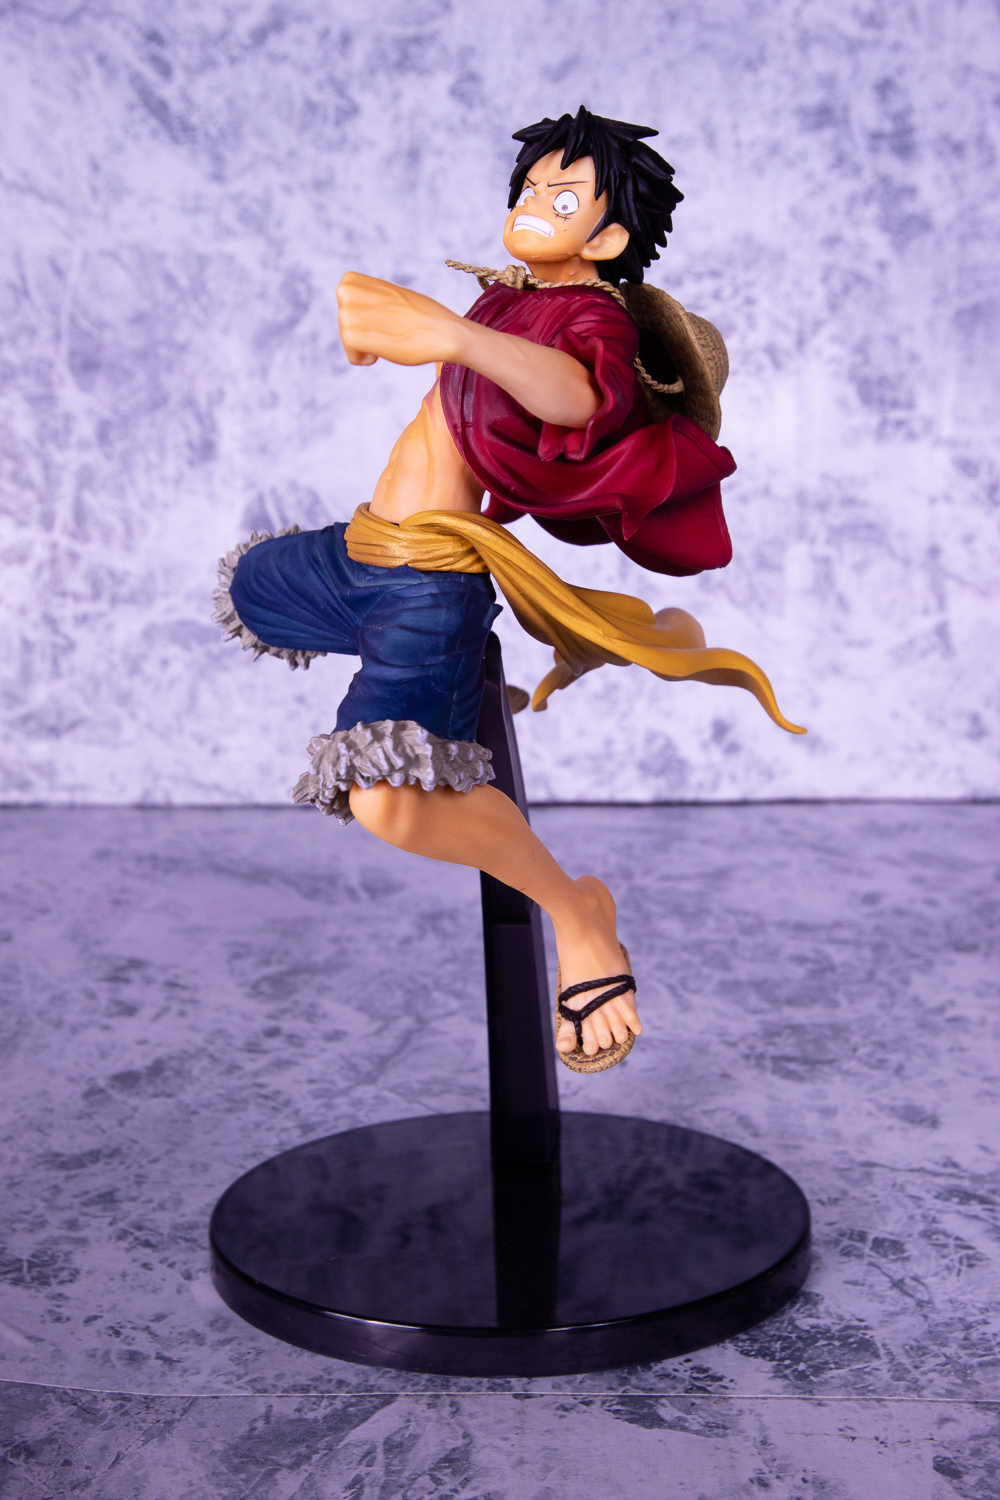 One Piece Monkey D Luffy Banpresto World Figure Colosseum Zoukeiou Bwfc Special Collection Figure Toys & Hobbies